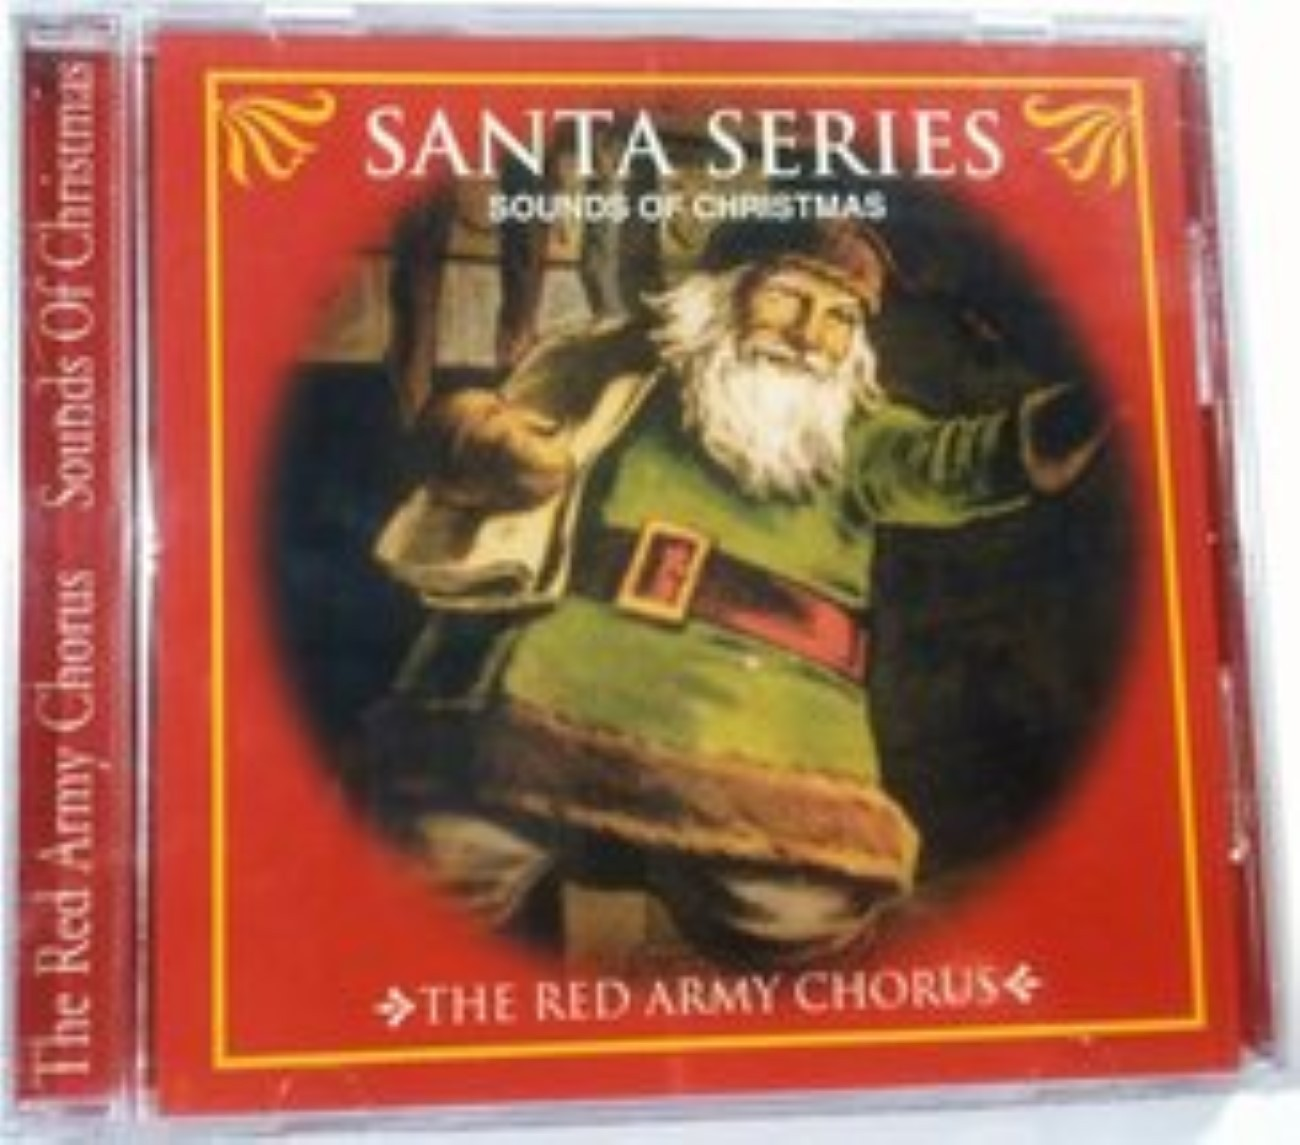 Santa Series - Sounds Of Christmas by The Red Army Chorus Cd